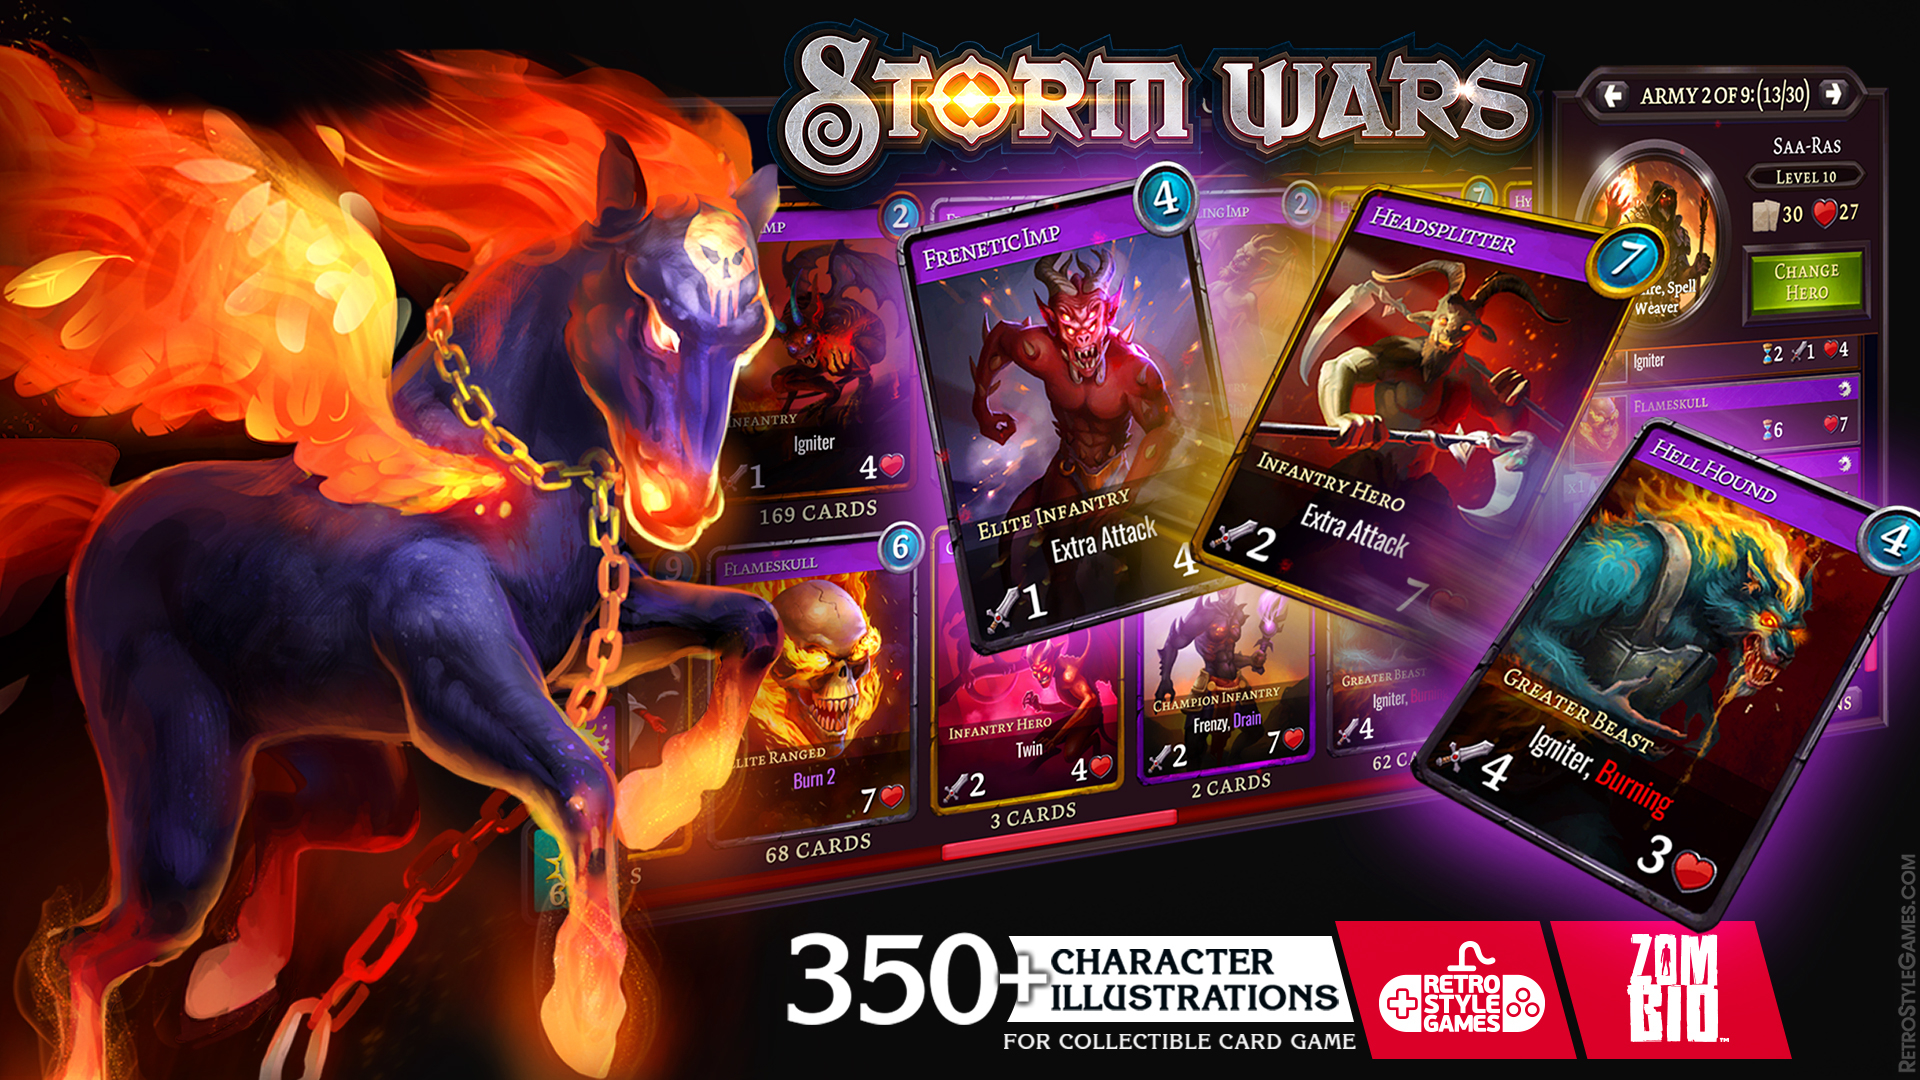 Collectible Card Character Concept Art Storm Wars